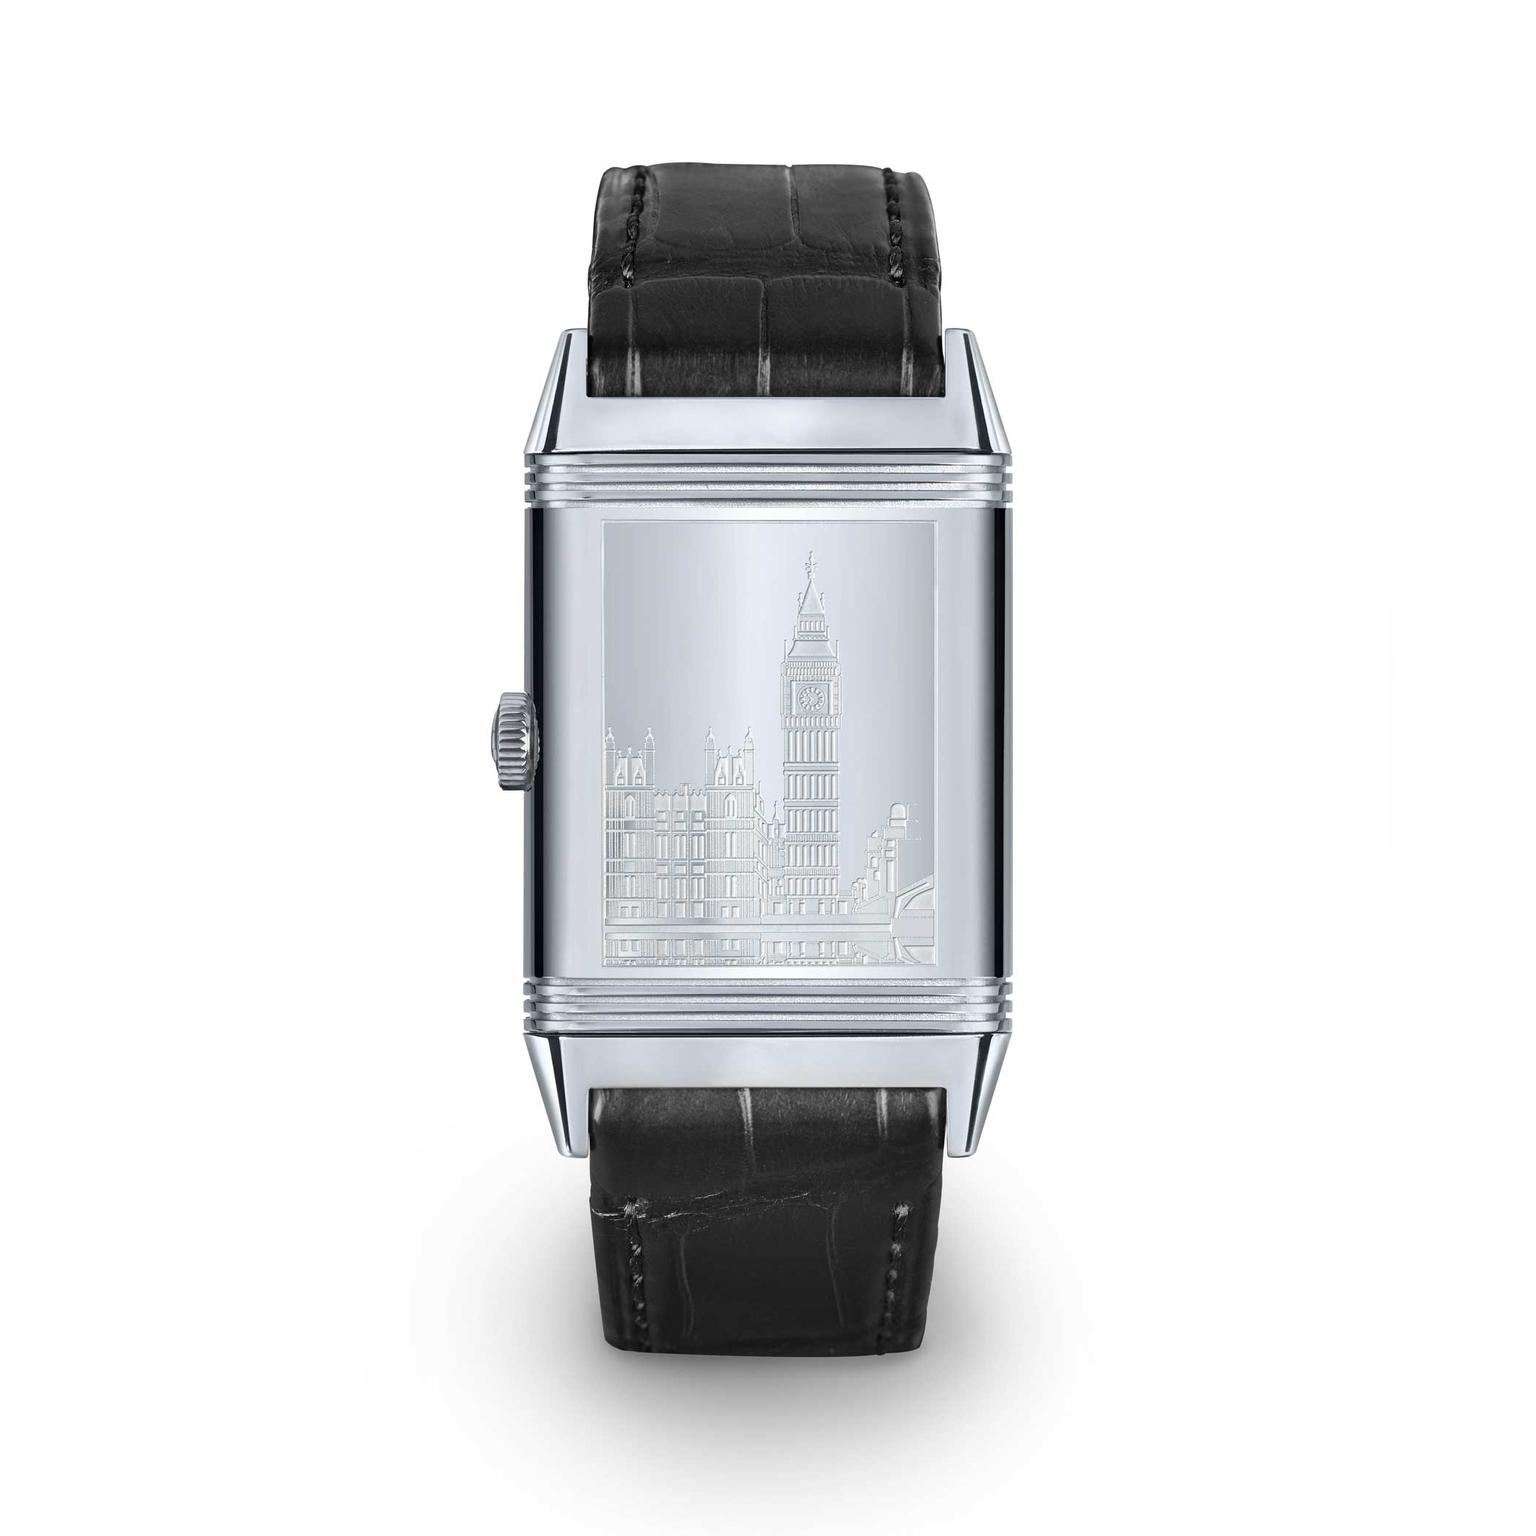 Jaeger-LeCoultre Grande Reverso UT Special London Flagship Edition back